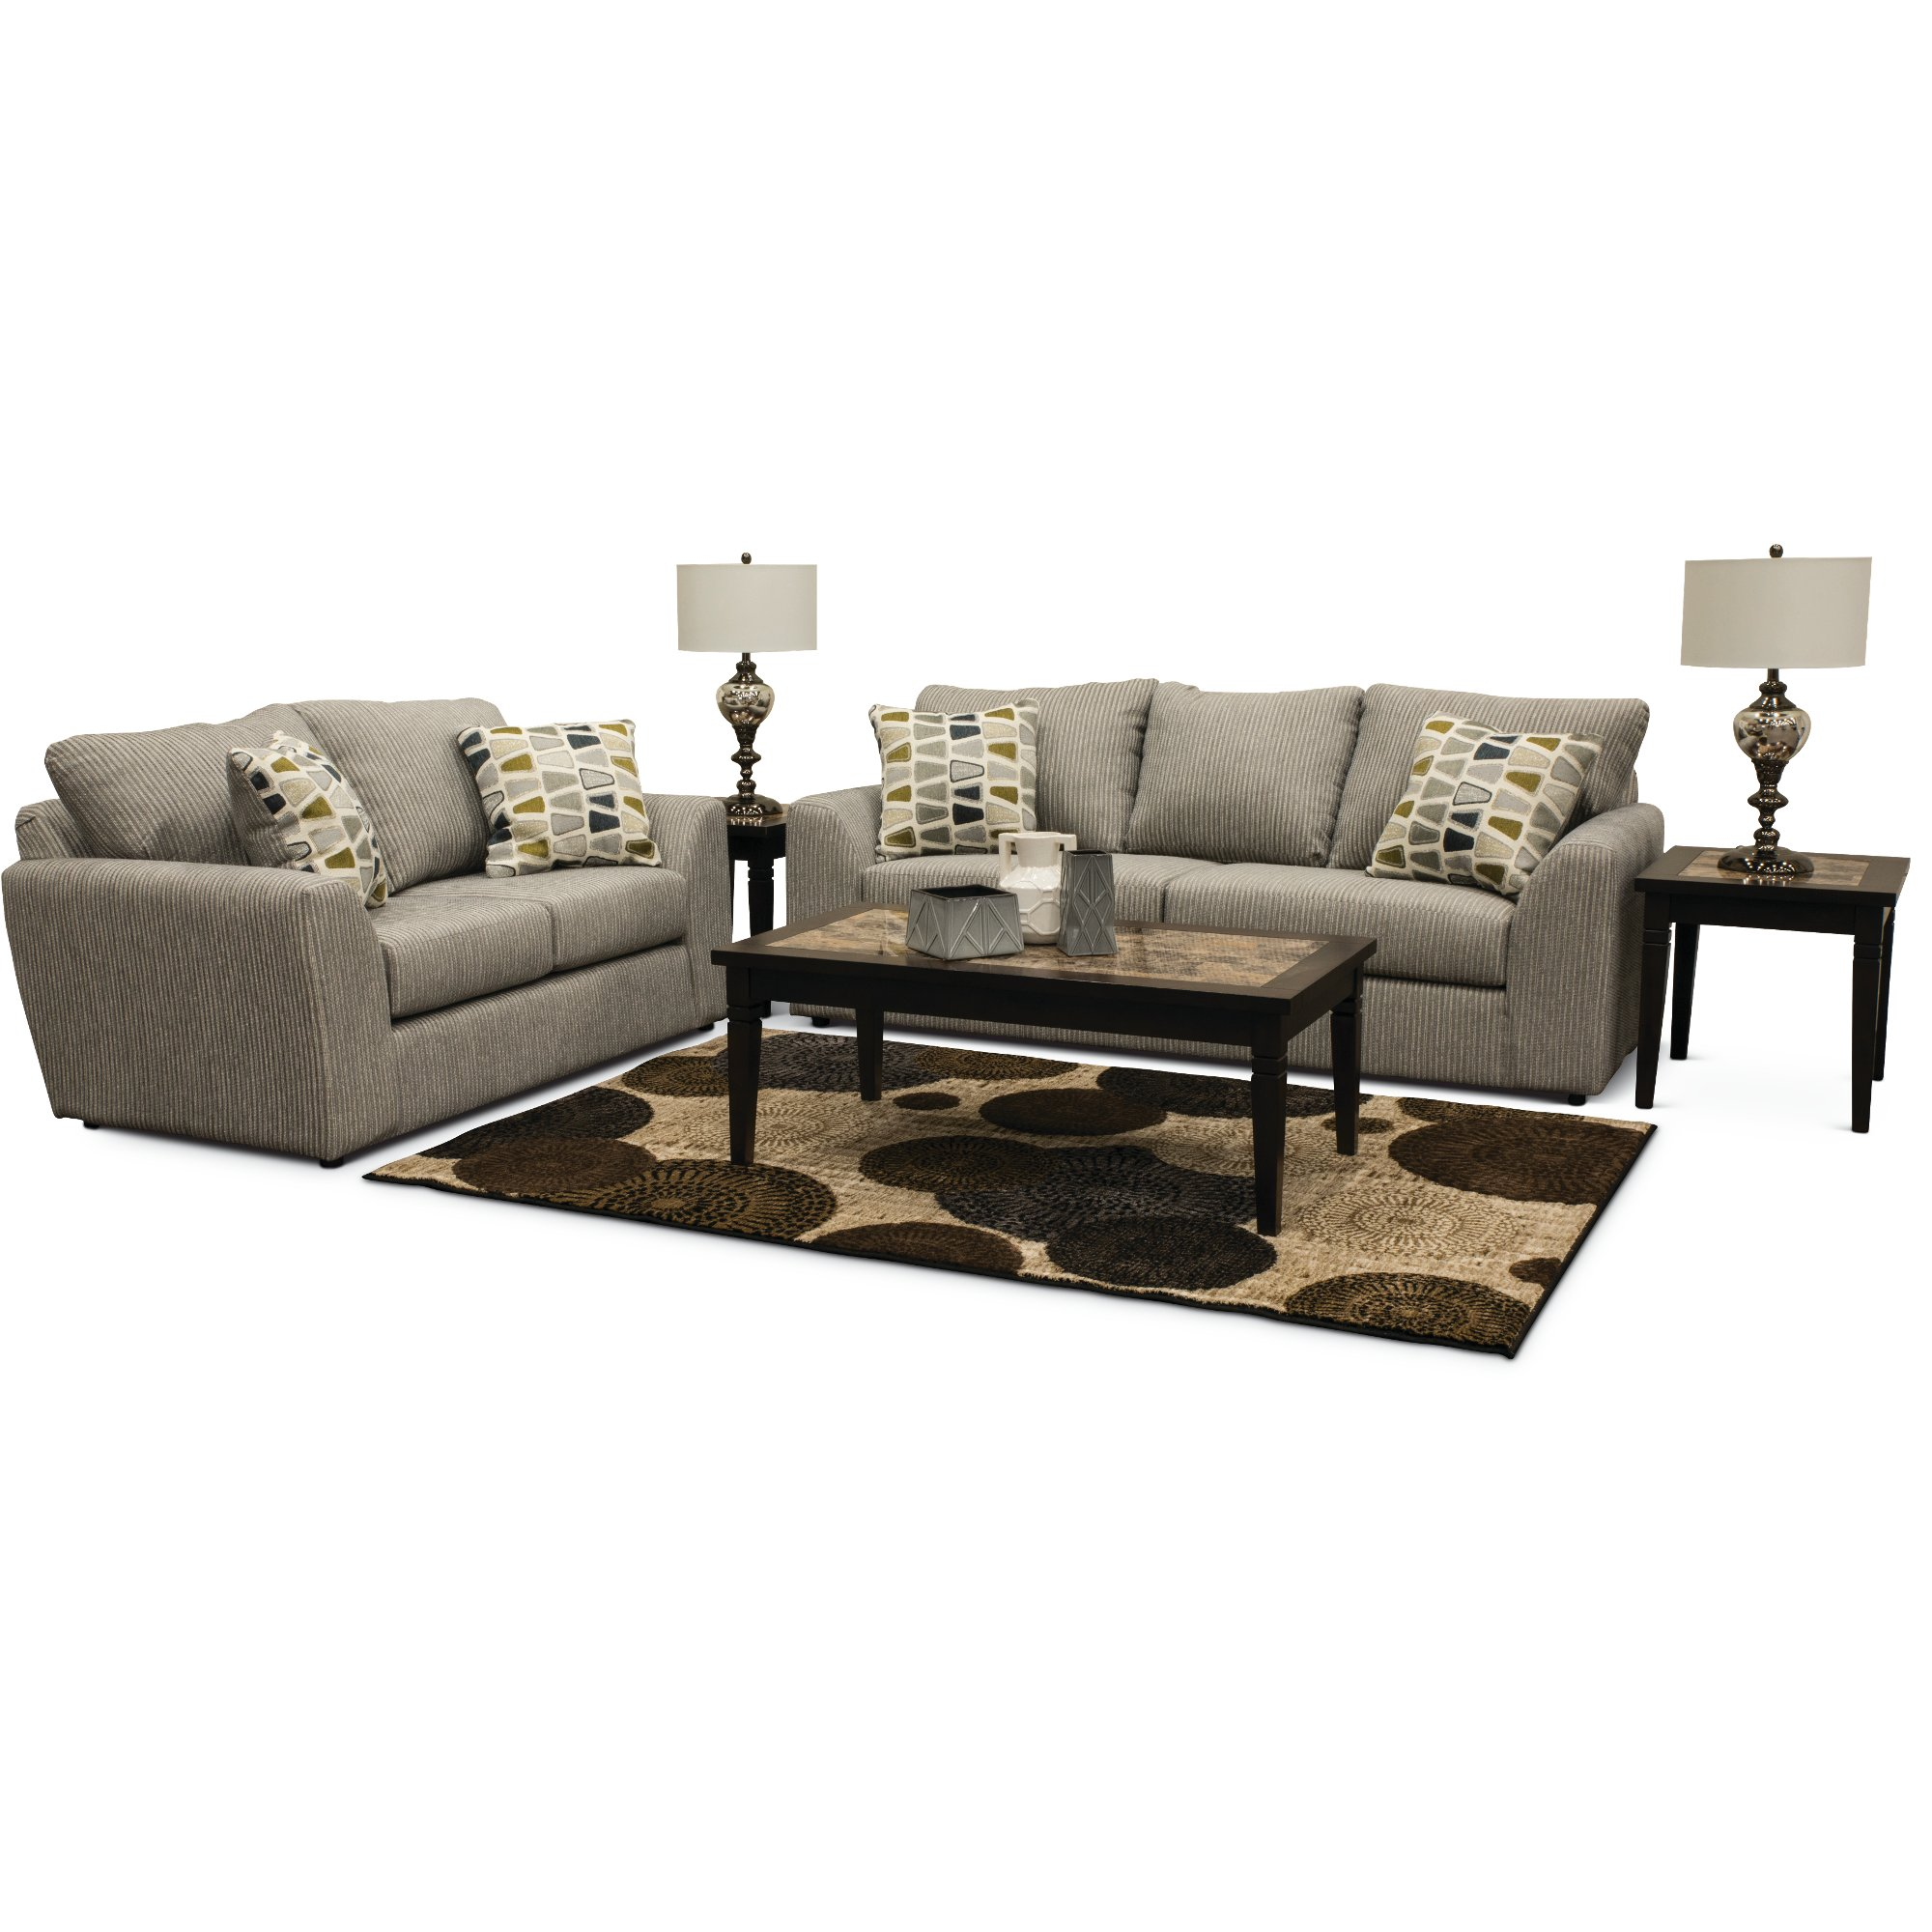 Wood & Marble 3 Piece Coffee Table Set | RC Willey Furniture Store